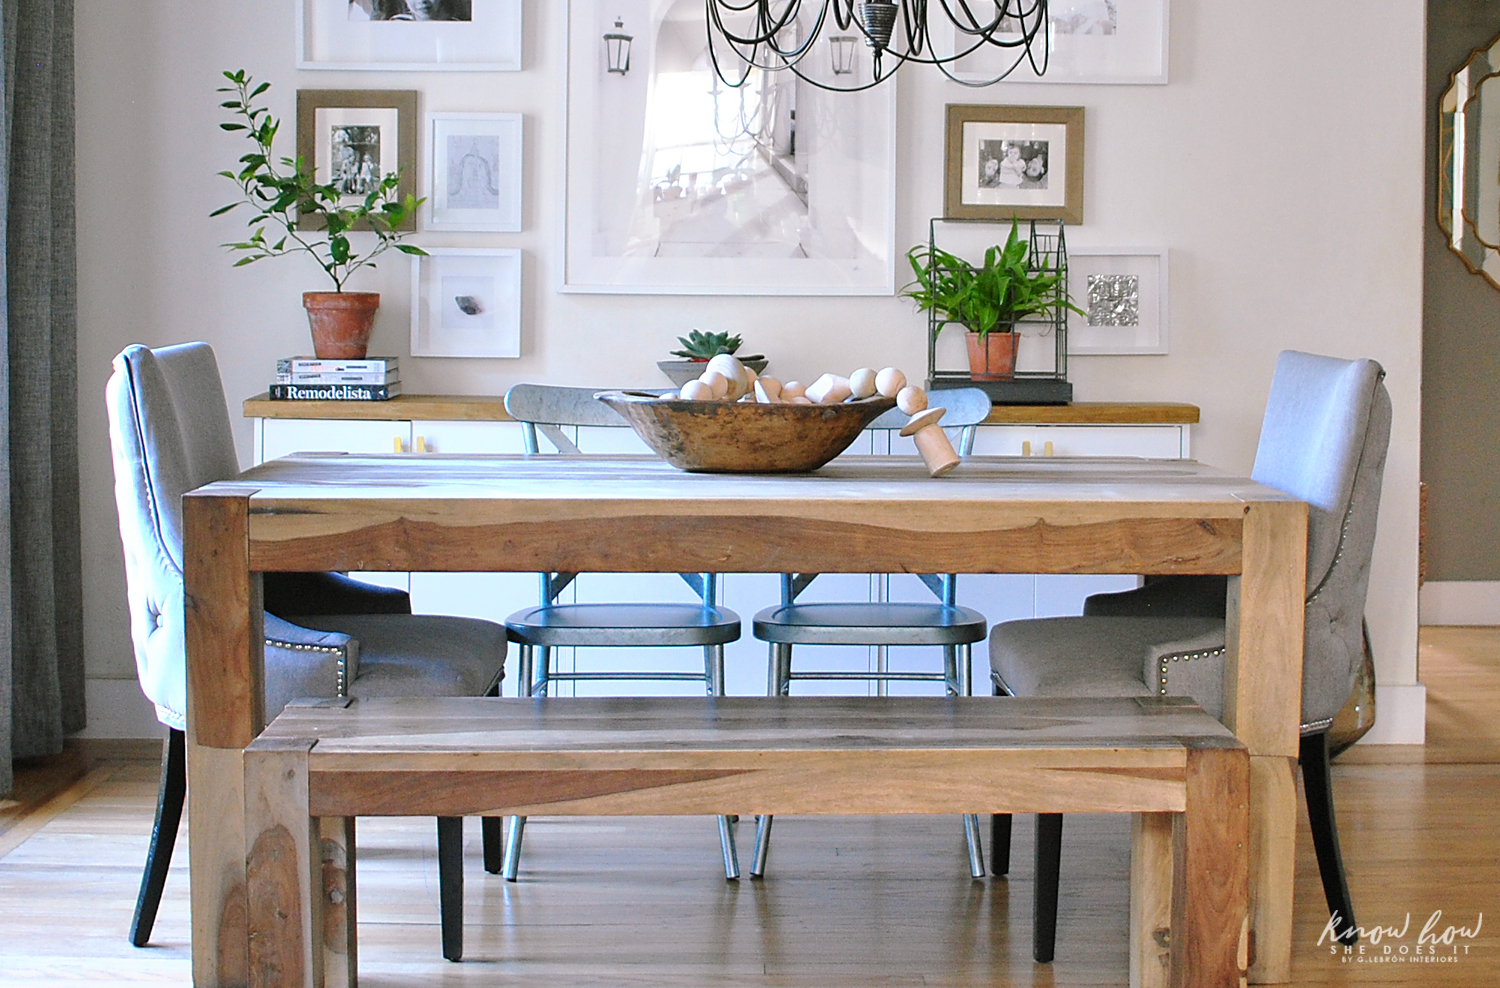 simple dining room decor for a transitional season rh knowhowshedoesit com simple dining room table decor simple dining room table centerpiece ideas